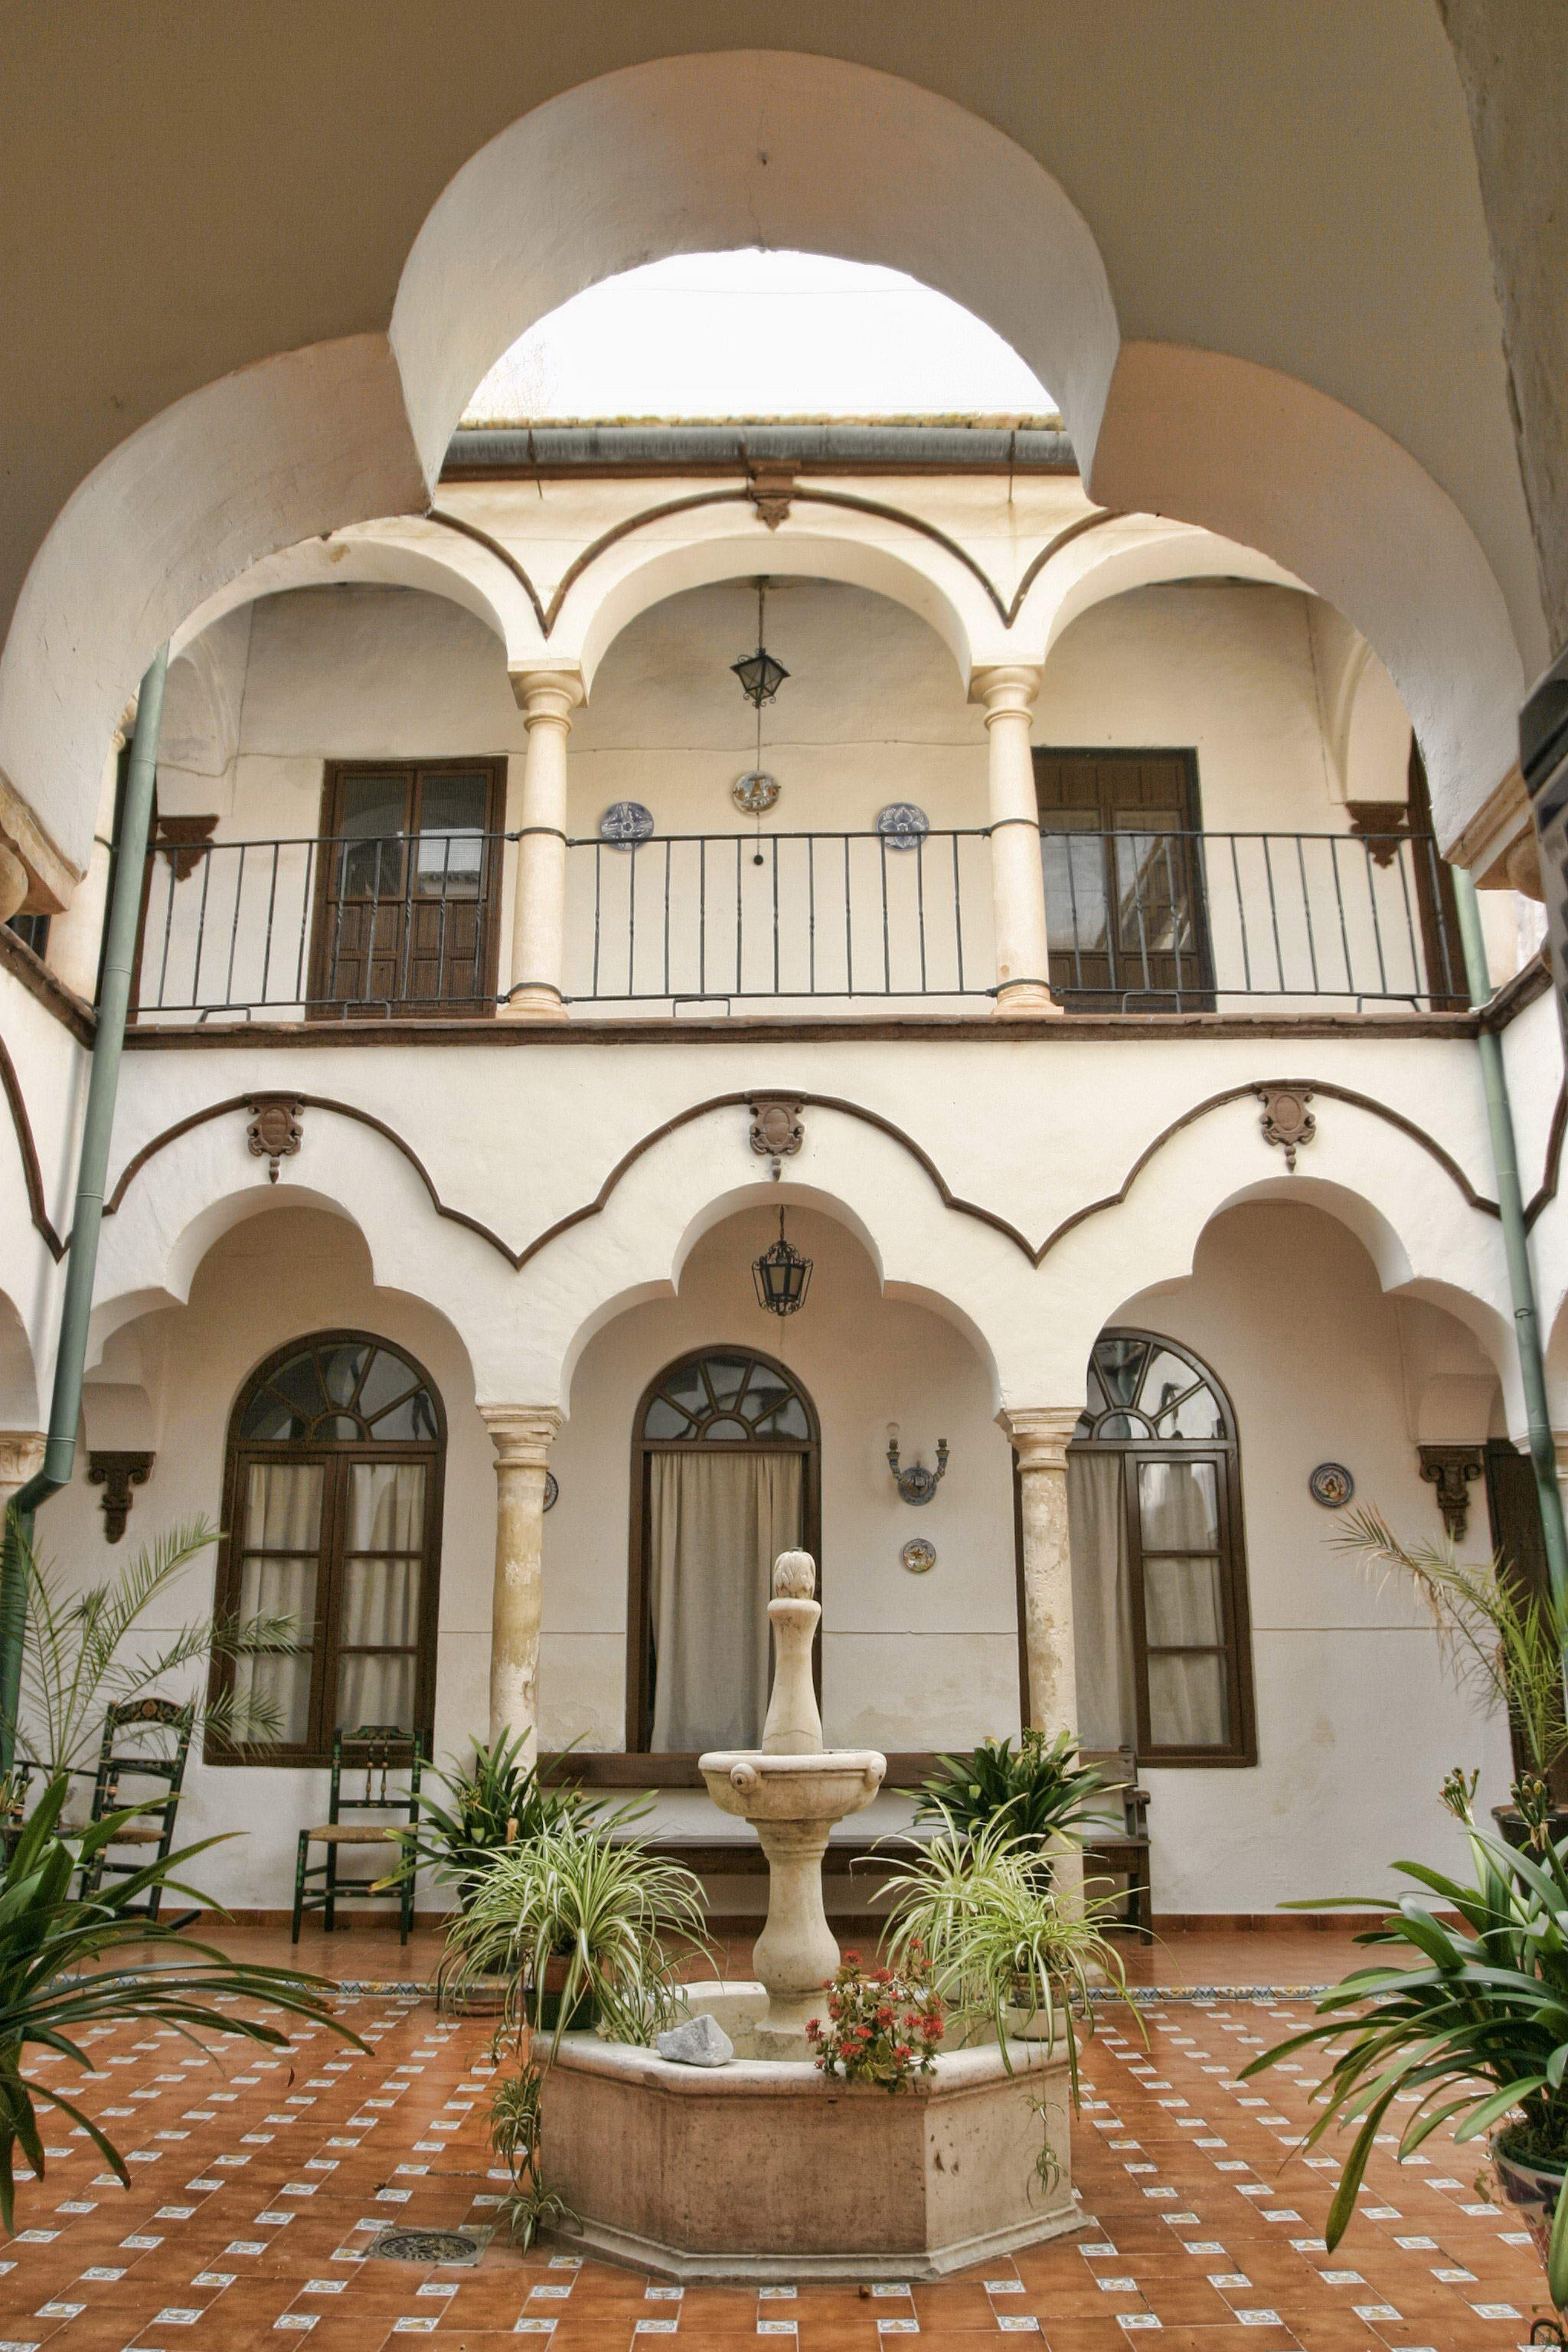 Courtyard of the Convent of the Visitation Las Filipenses of Ecija